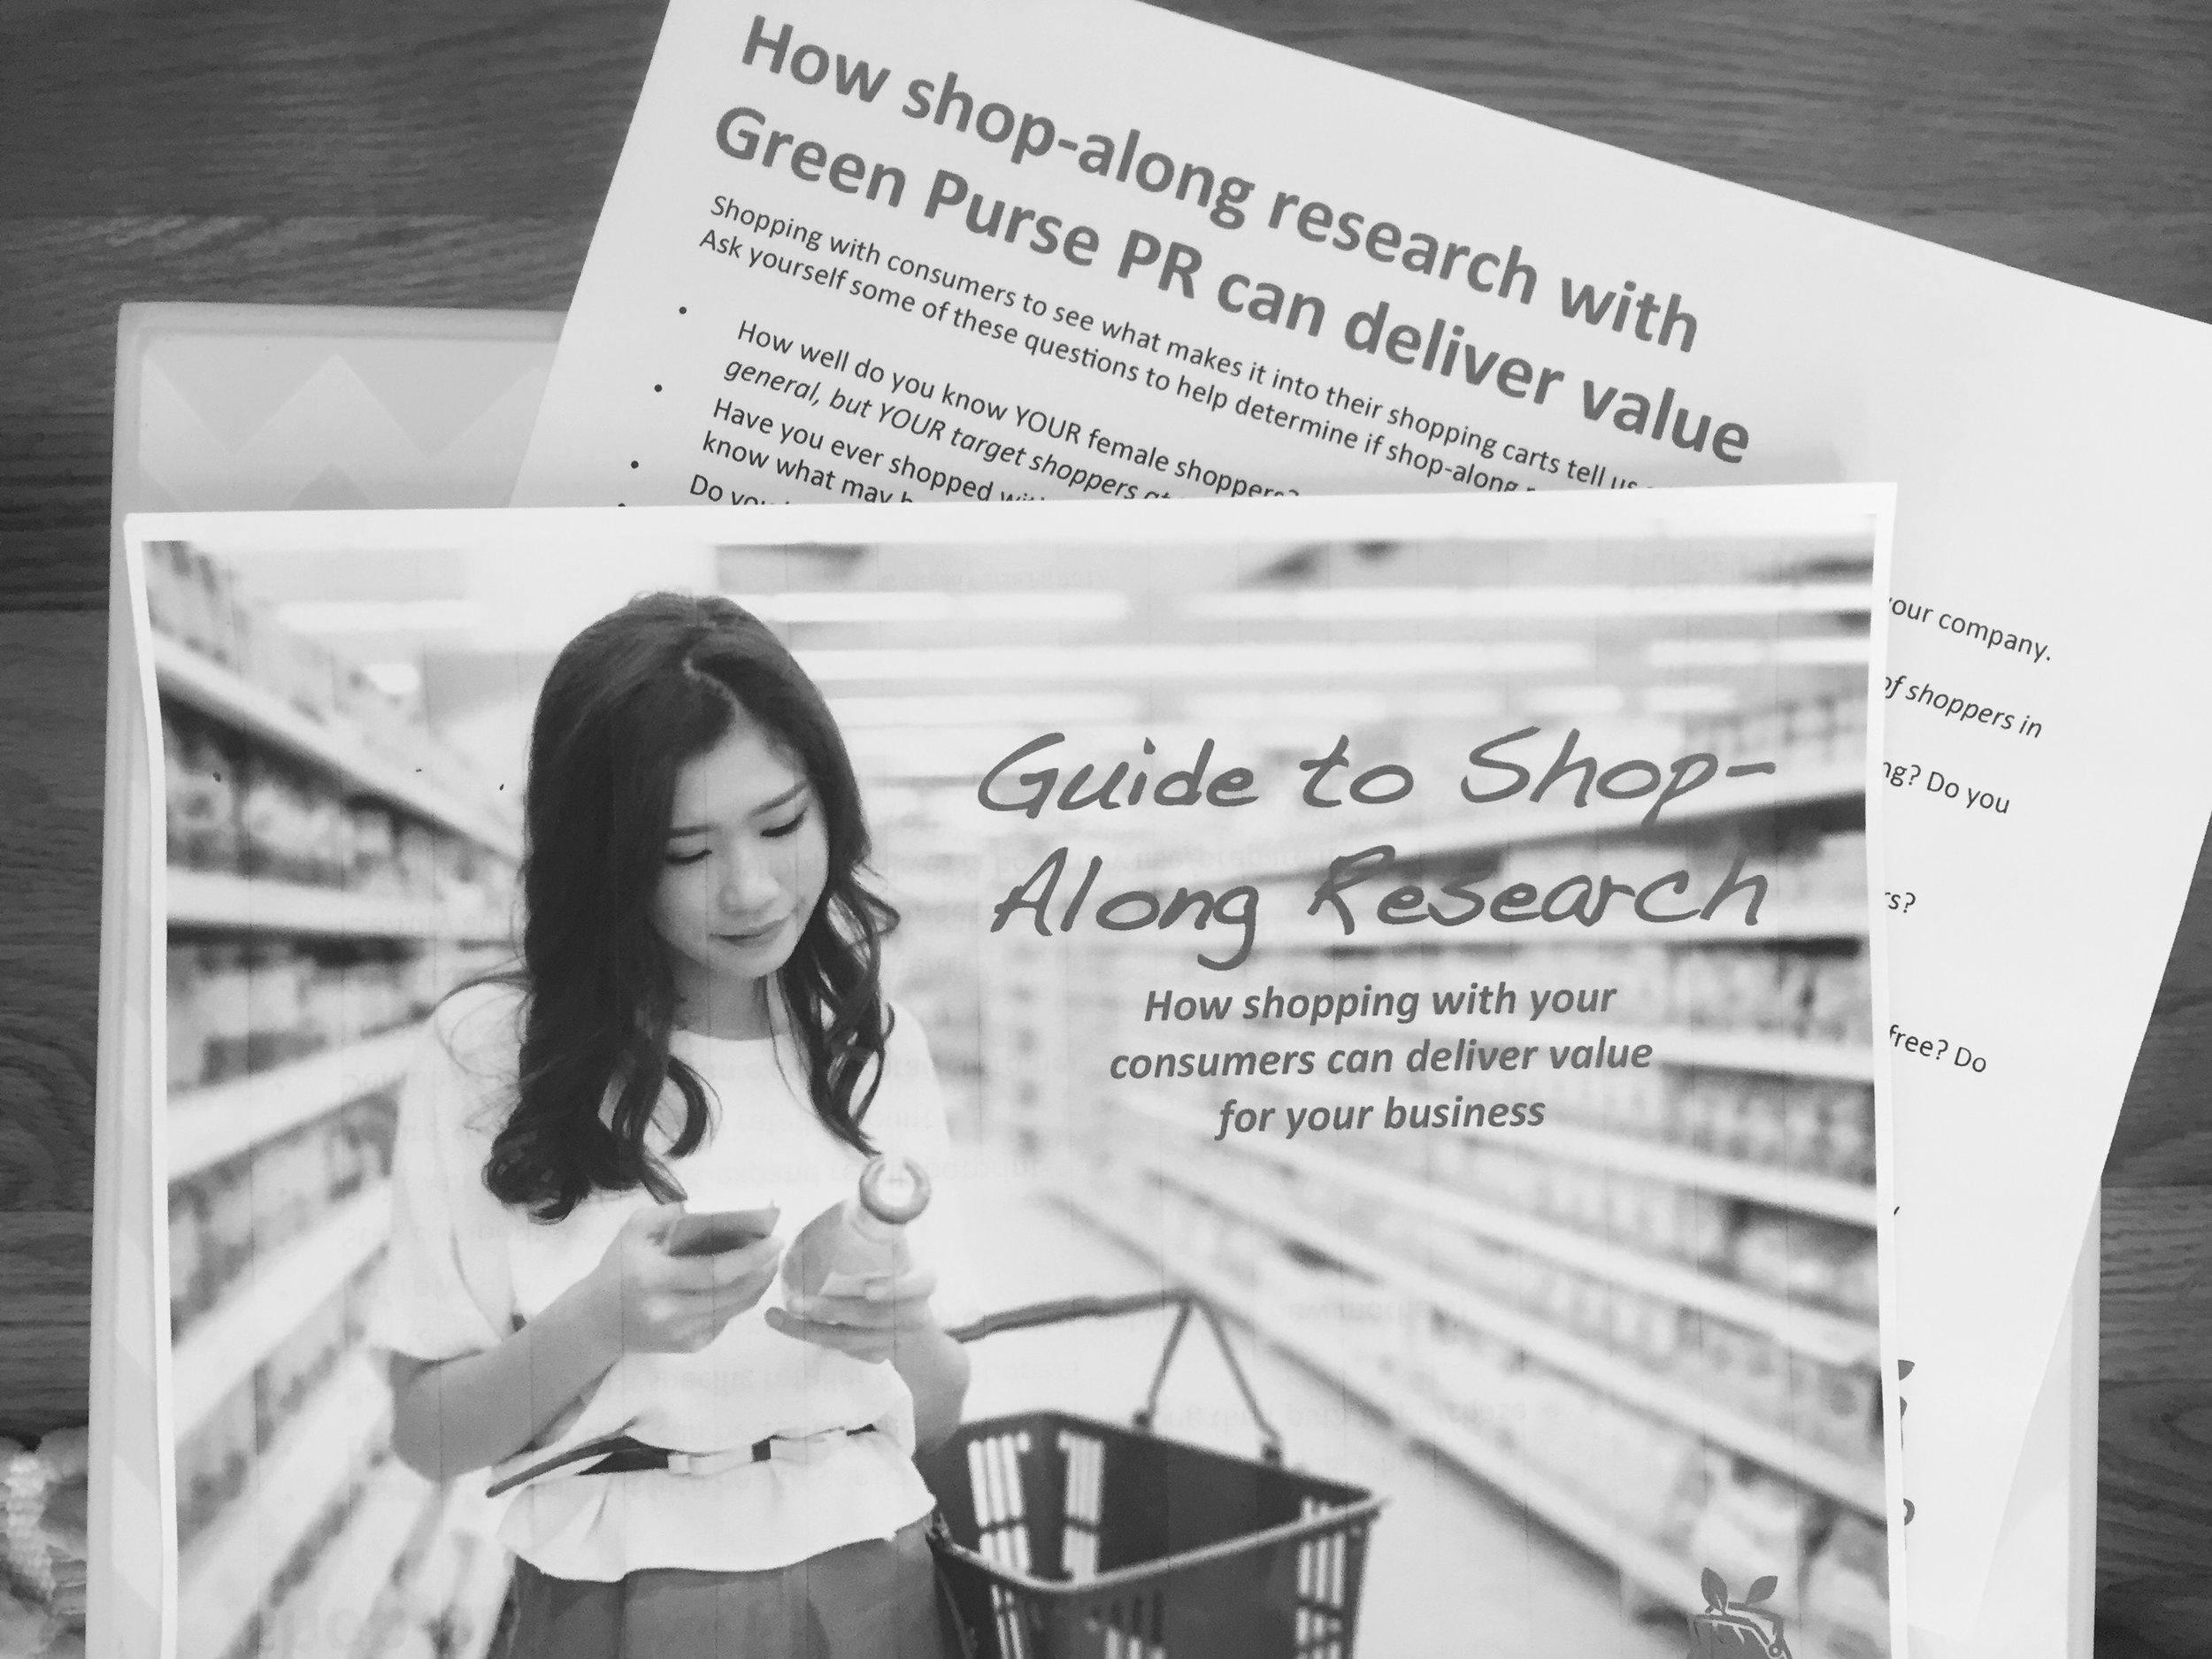 Print out of Green Purse PR's new Guide to Shop-Along Research